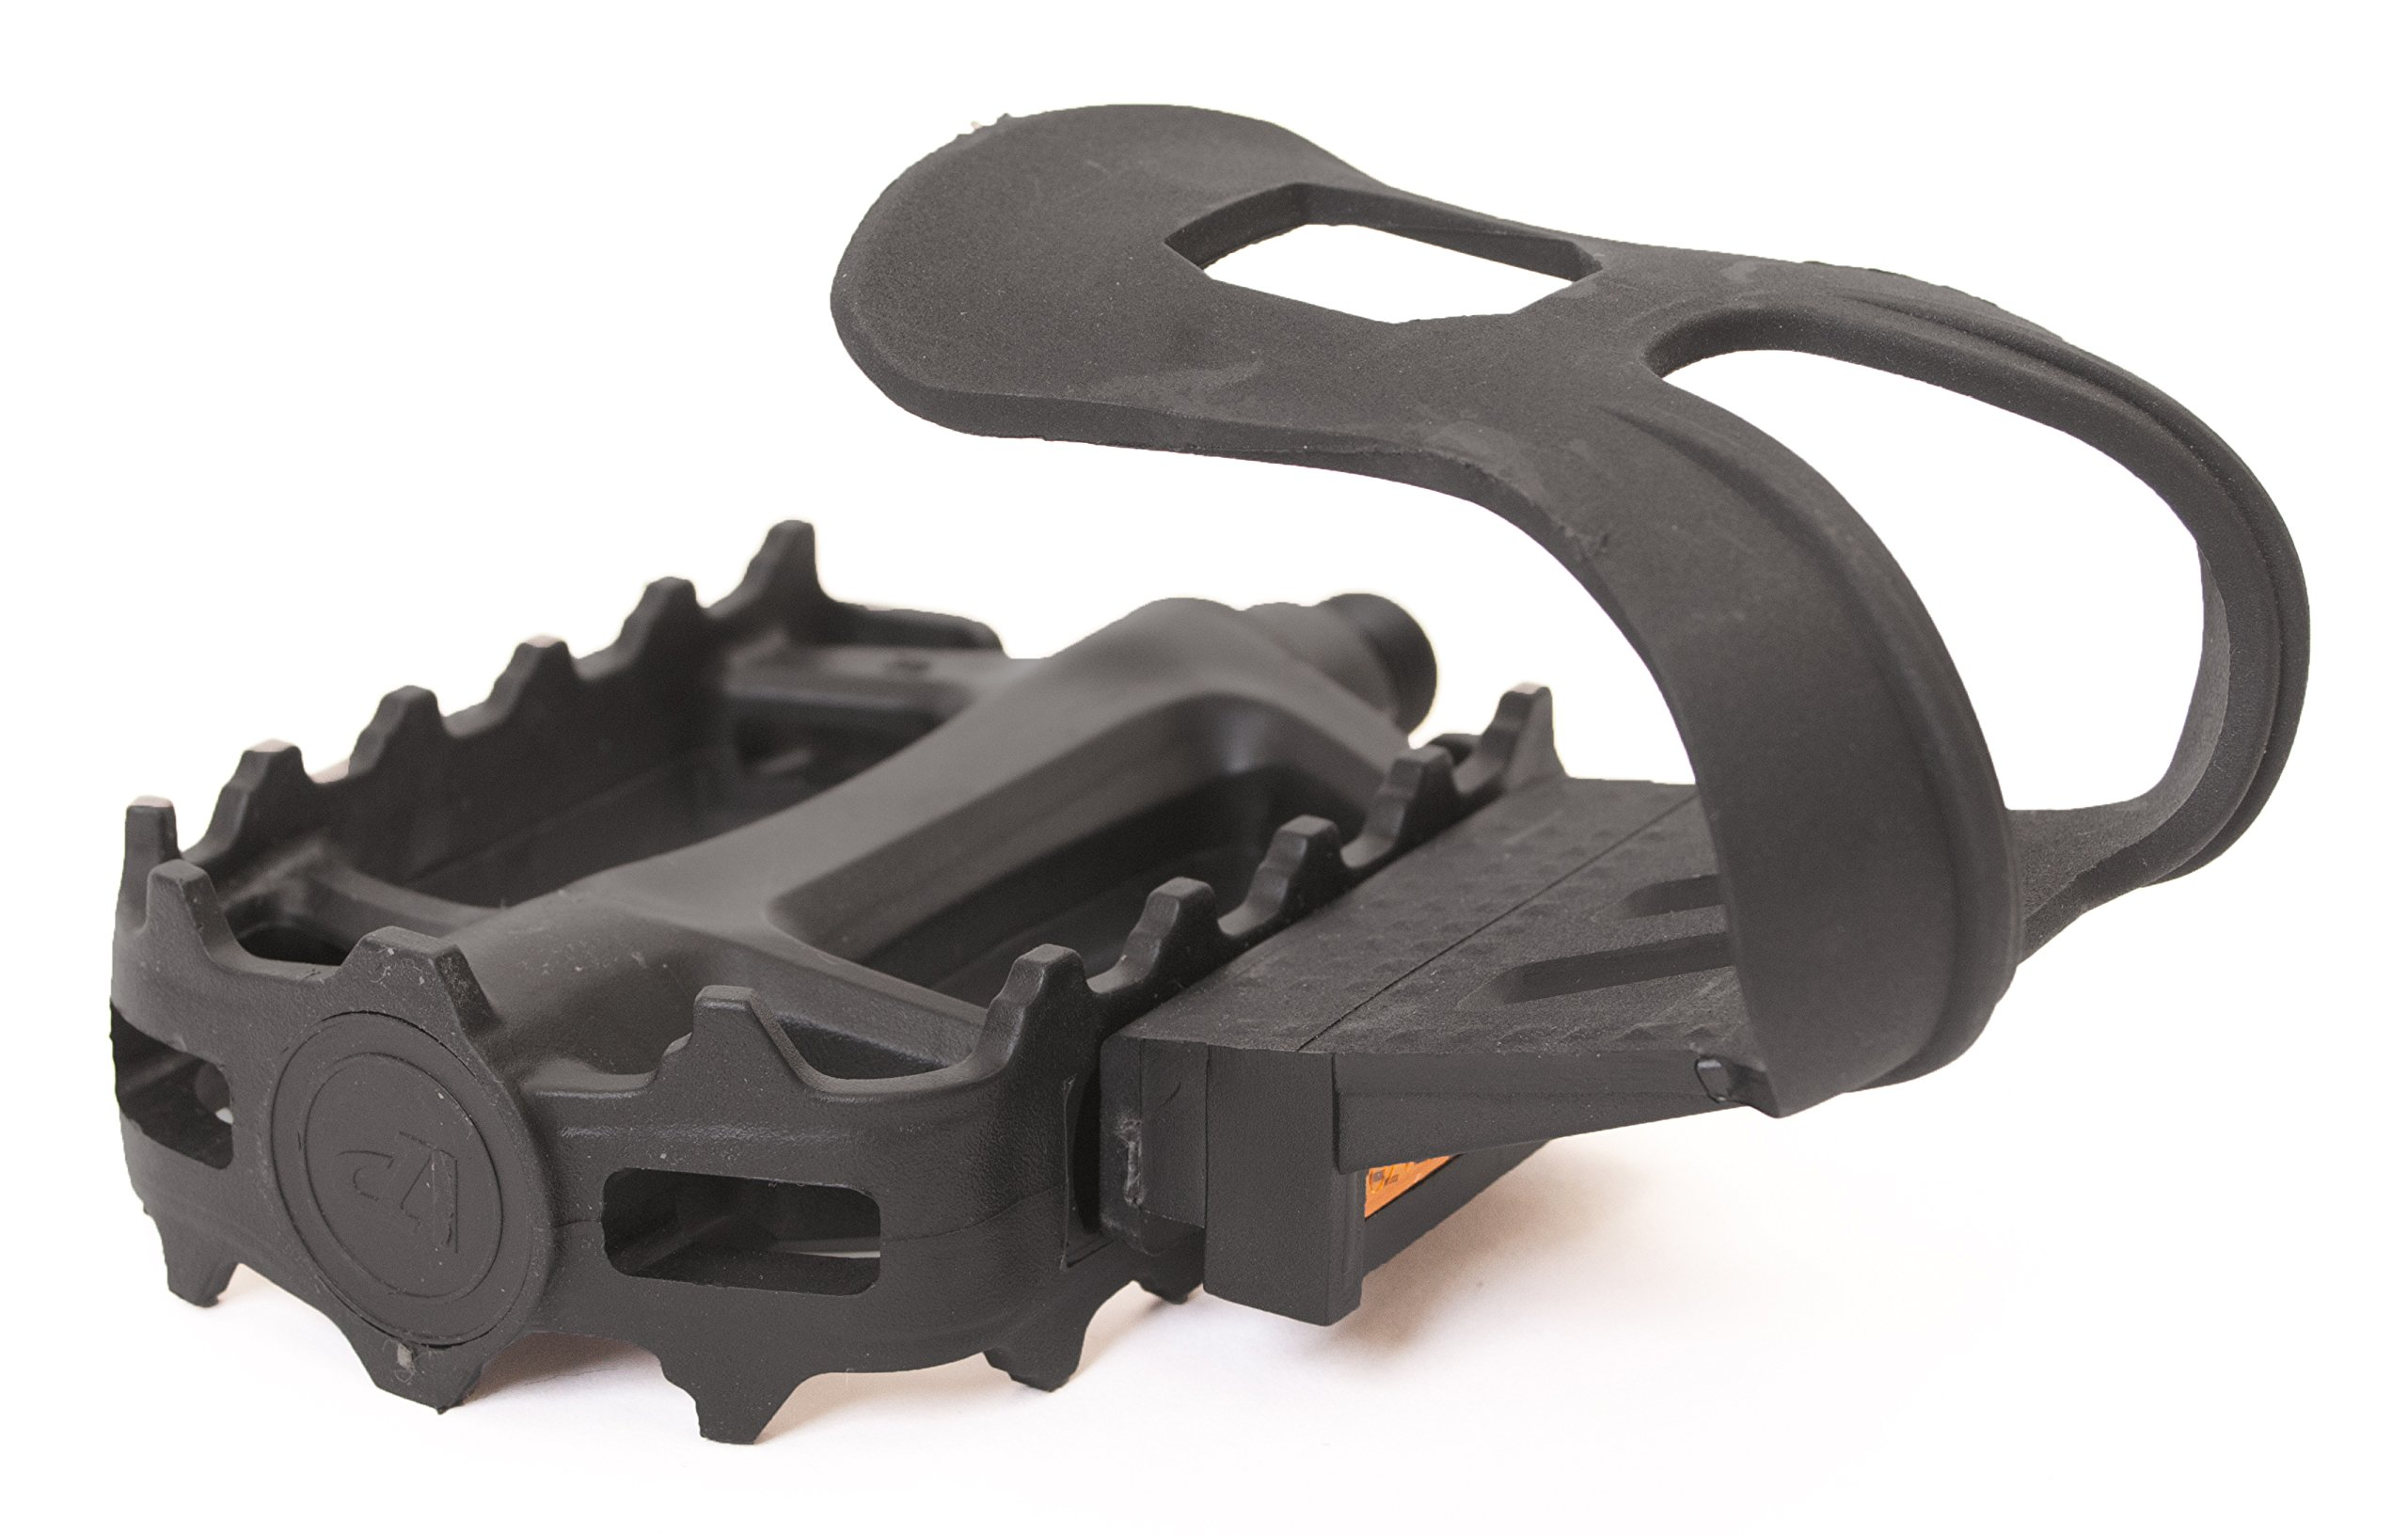 Retrospec Bicycles Resin Bike Pedal with Strapless Bicycle Toe Clip/Cage/Reflectors, Black